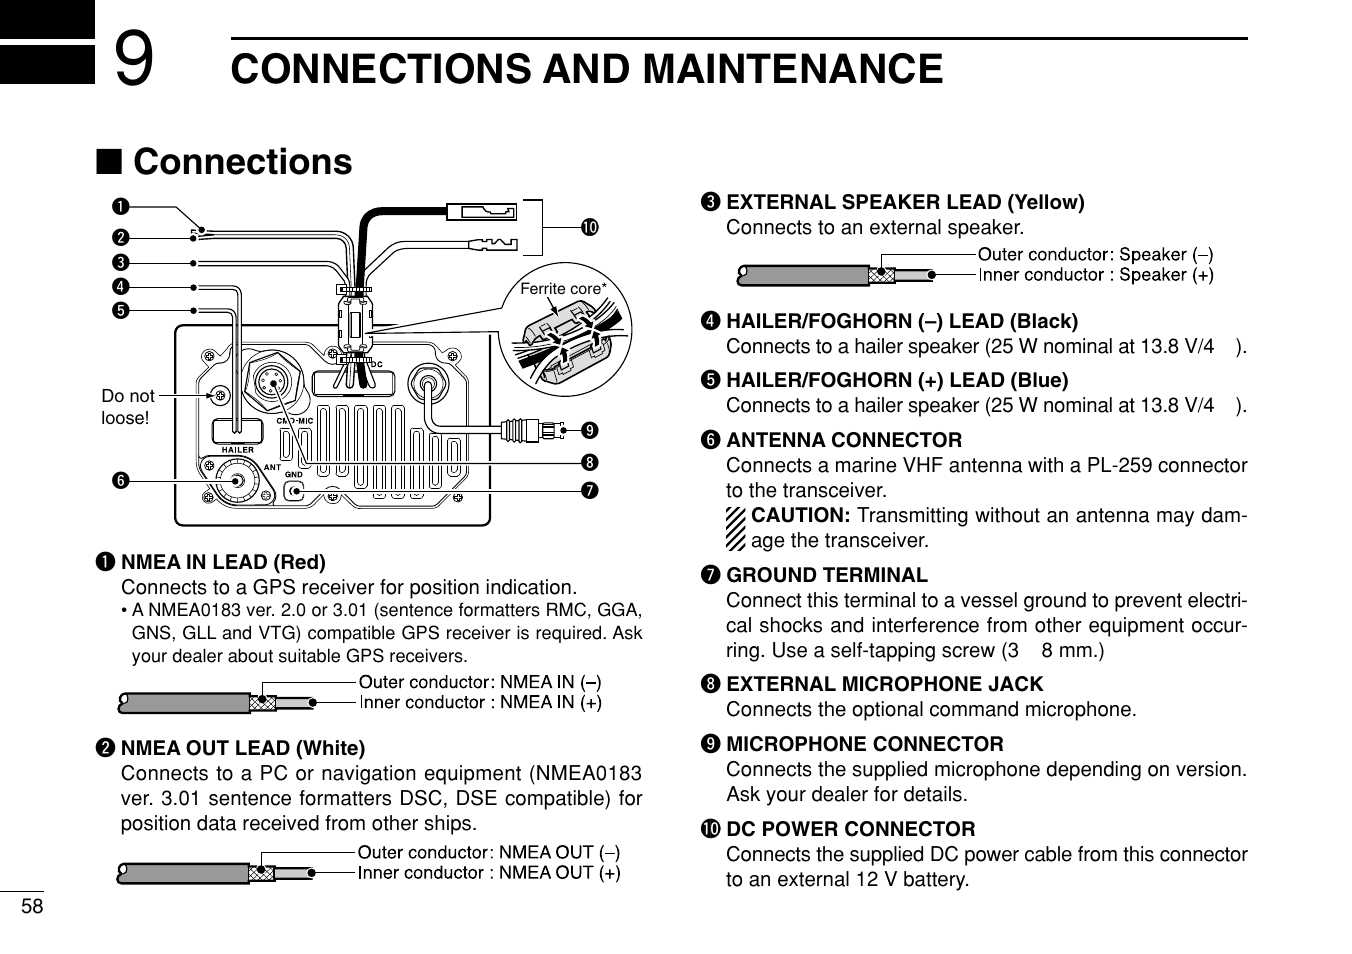 Connections and maintenance, Connections | Icom IC-M504 User Manual | Page  64 /